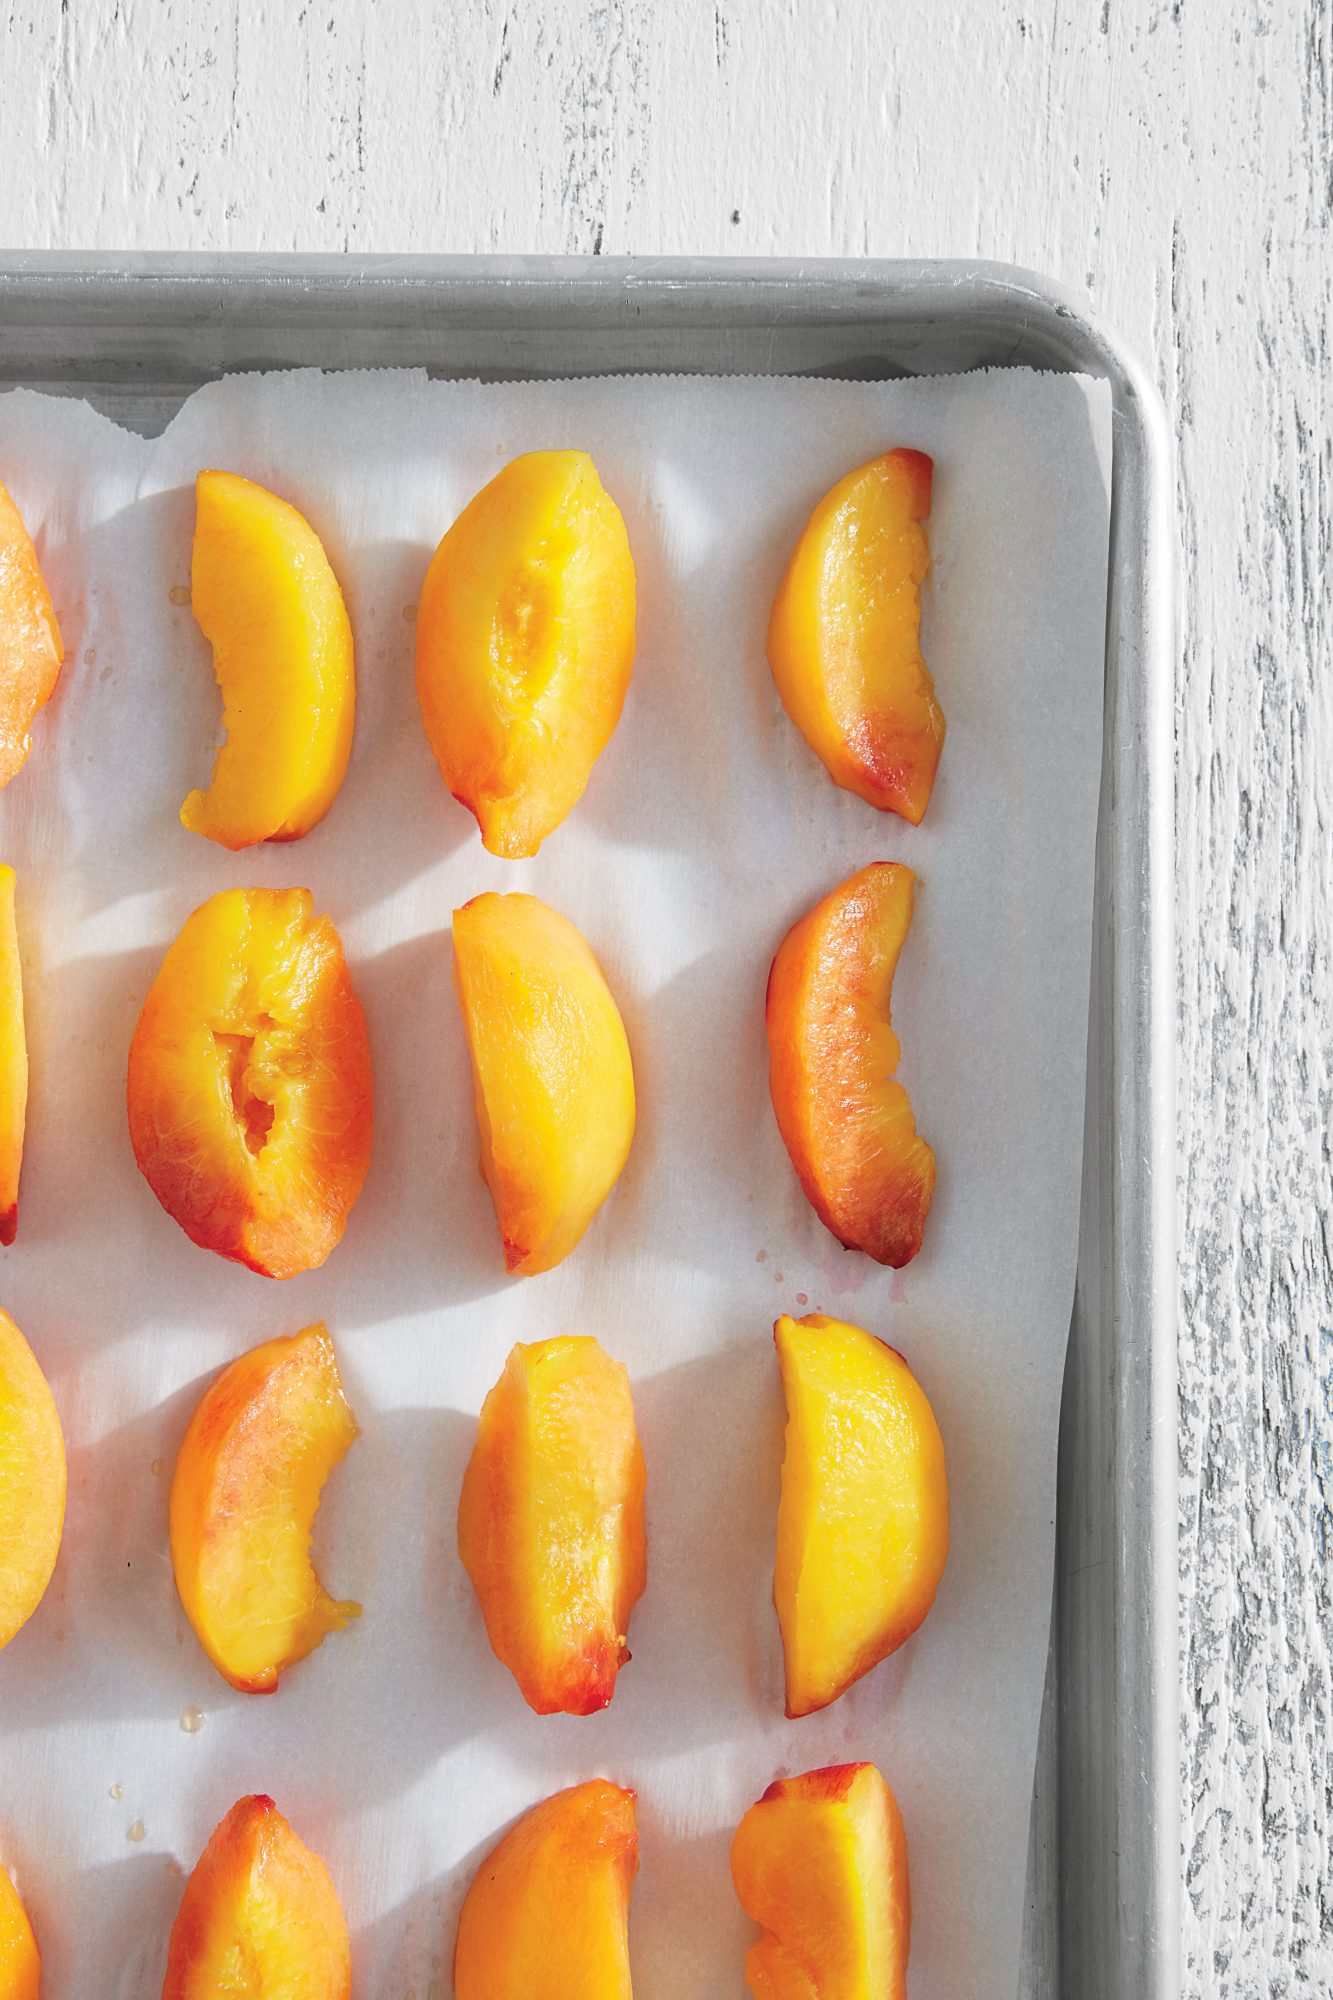 Baking Sheet Freezing Peaches